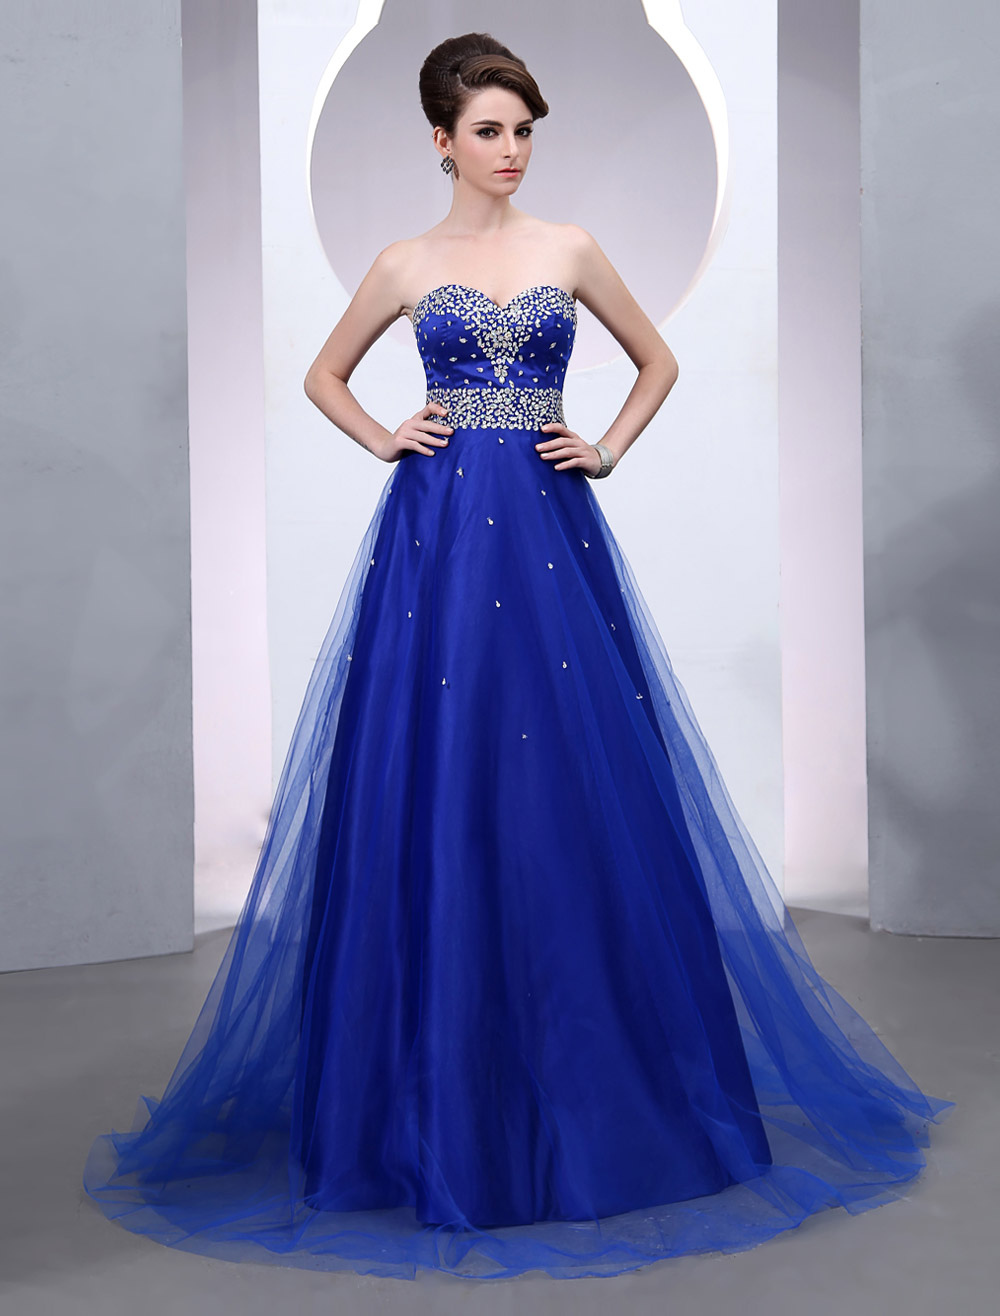 Blue Prom Dress 2018 Long Tulle Wedding Dress Royal Blue Backless Strapless Sweetheart Court Train Bridal Gown (Blue Wedding Dress) photo